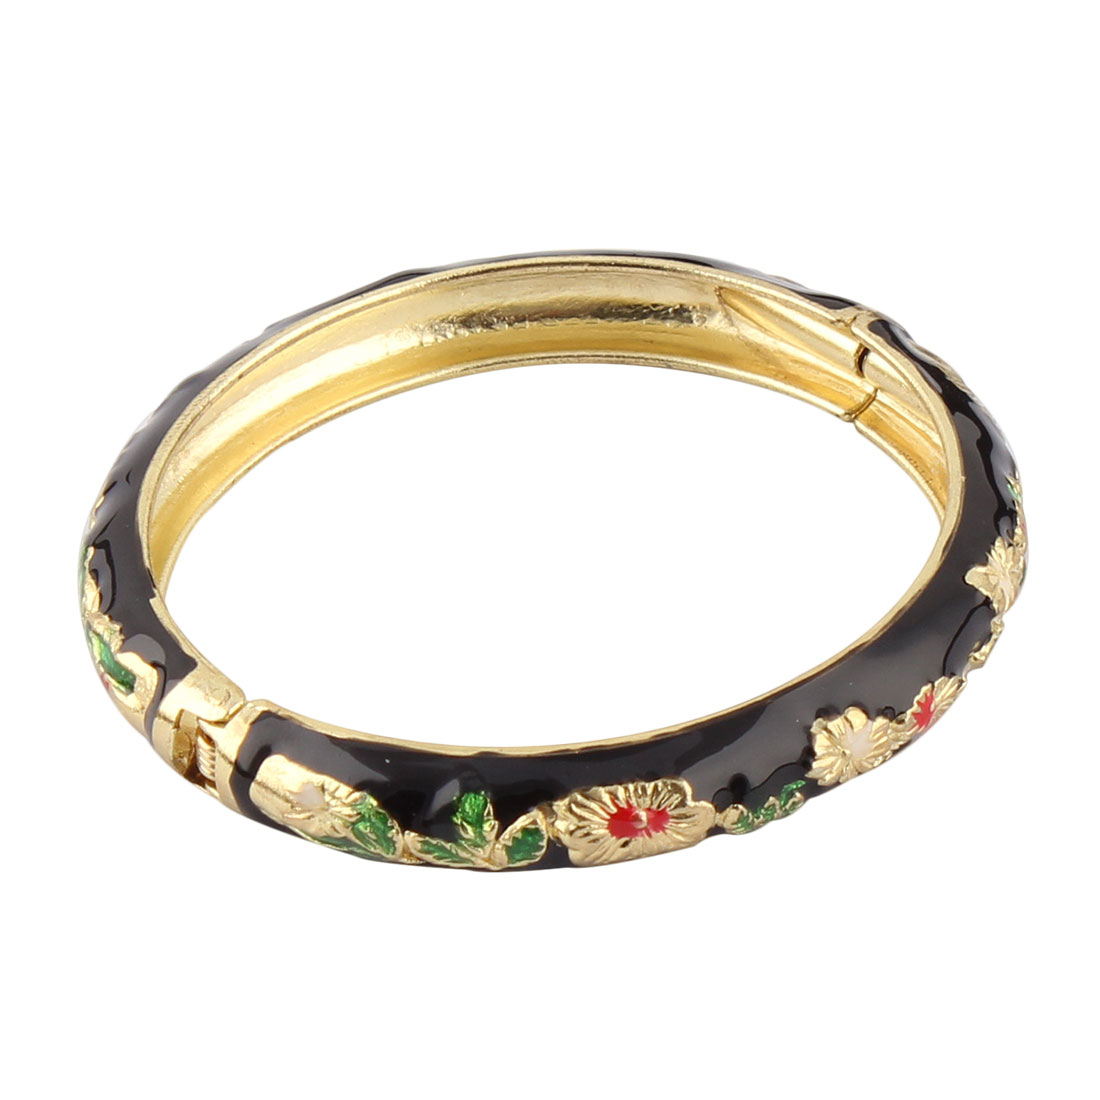 Woman Hinged Round Cuff Flower Pattern Enamel Bracelet Bangle Black Gold Tone